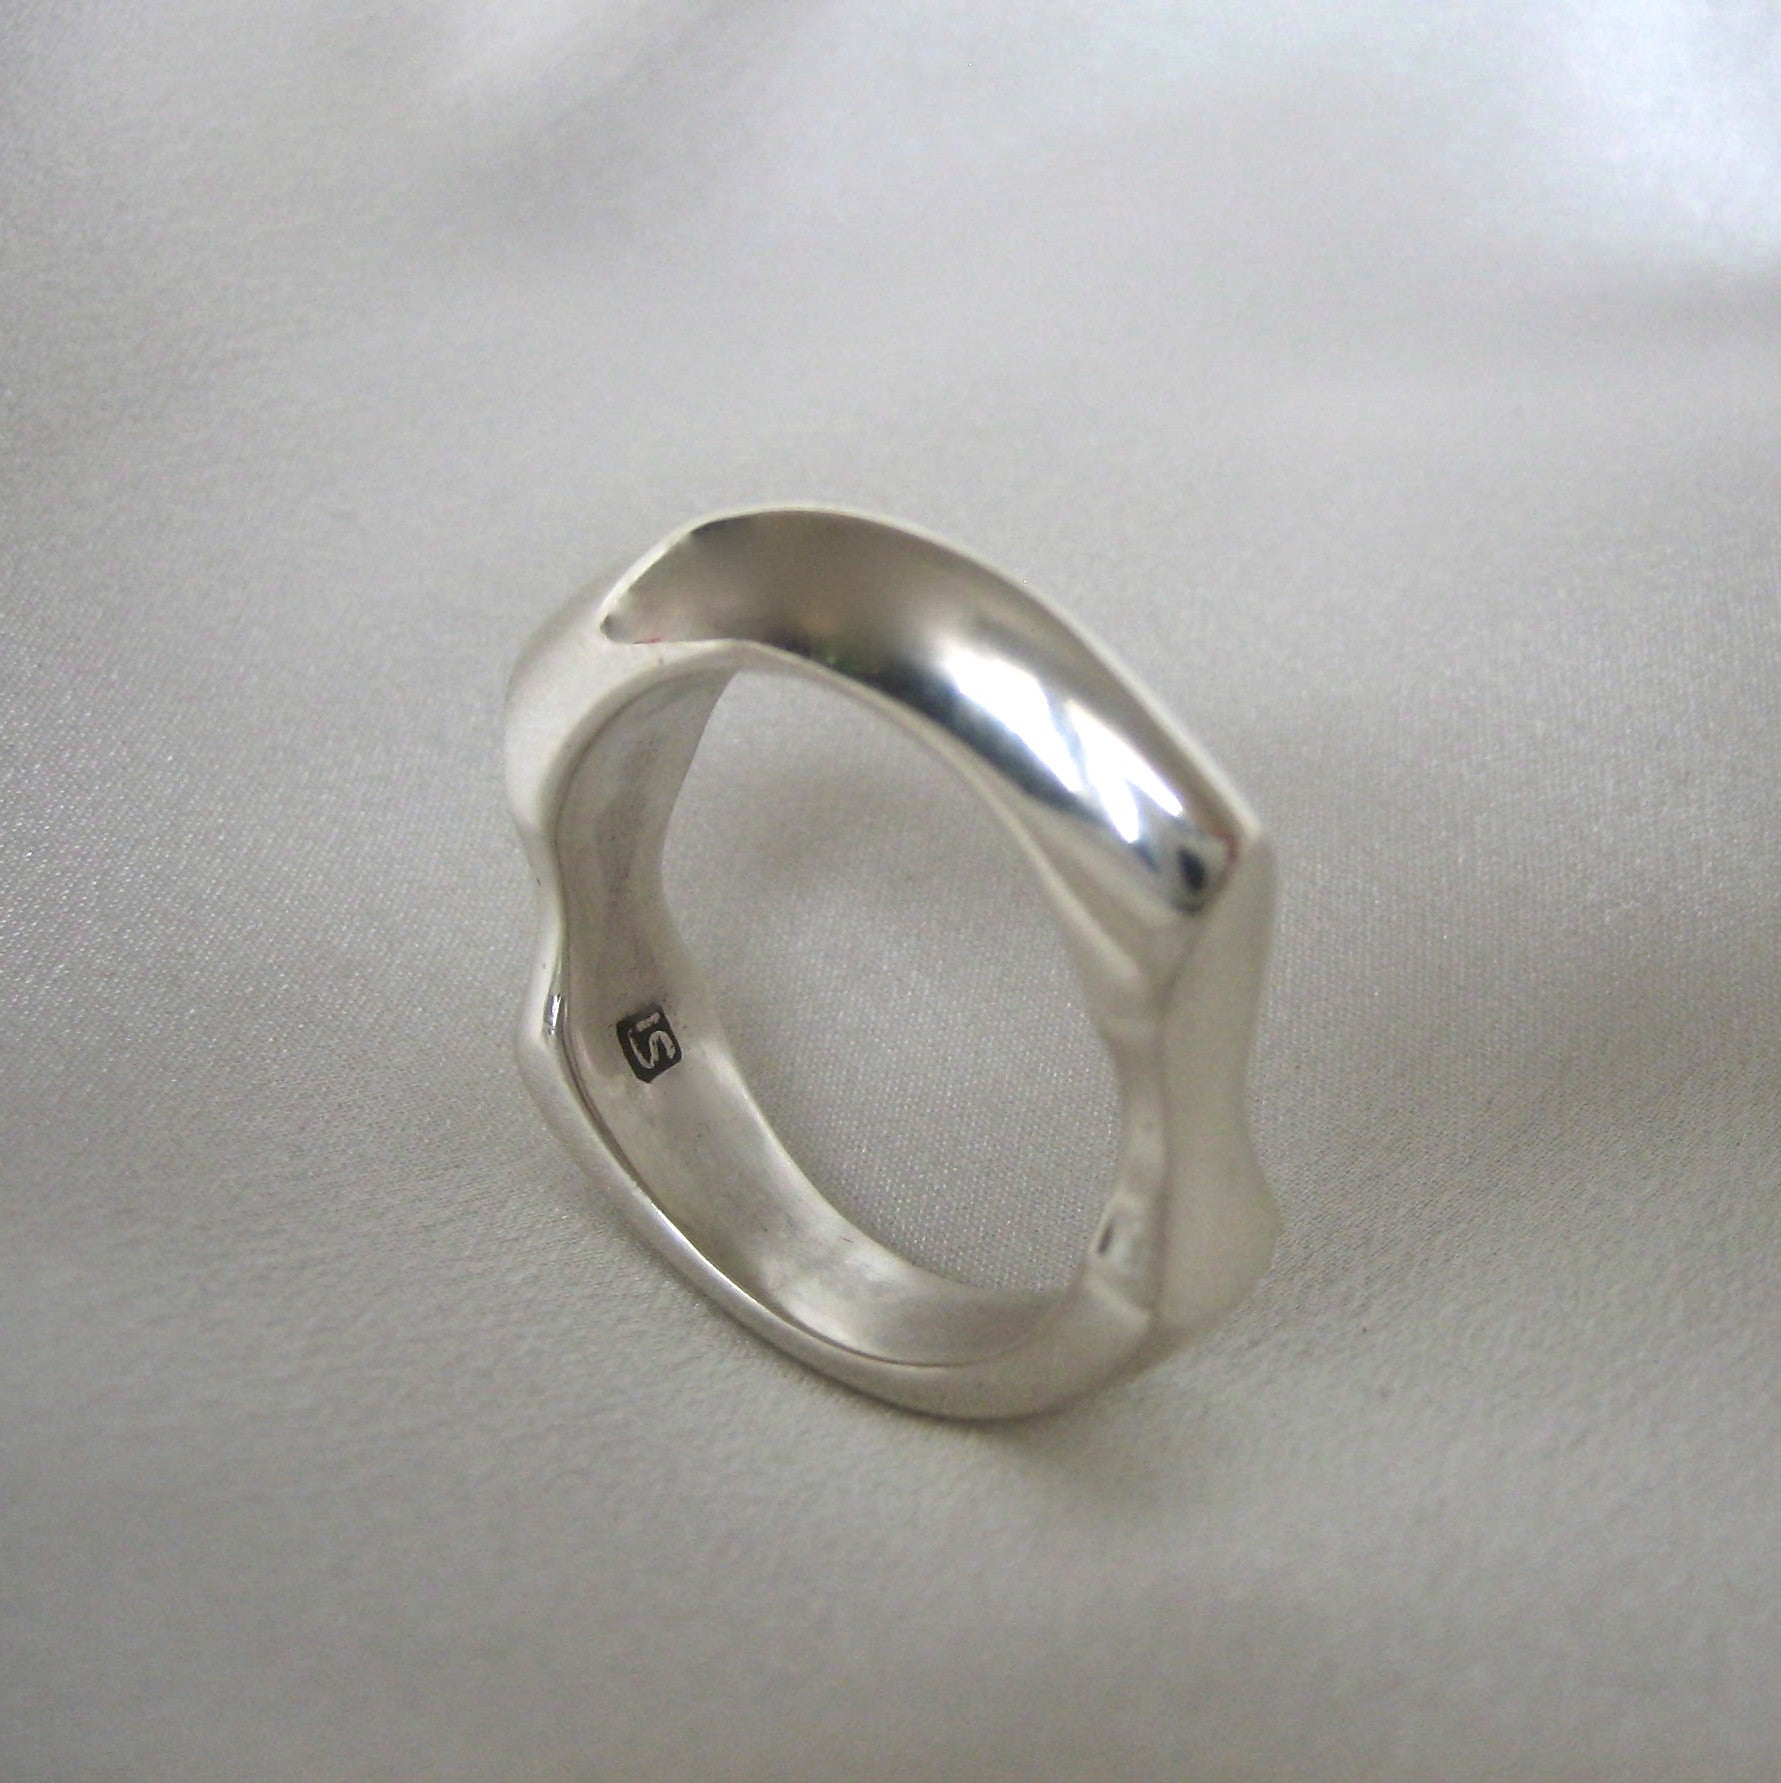 rings design ring solid mokume palladium silver products wedding and band sterling handcrafted